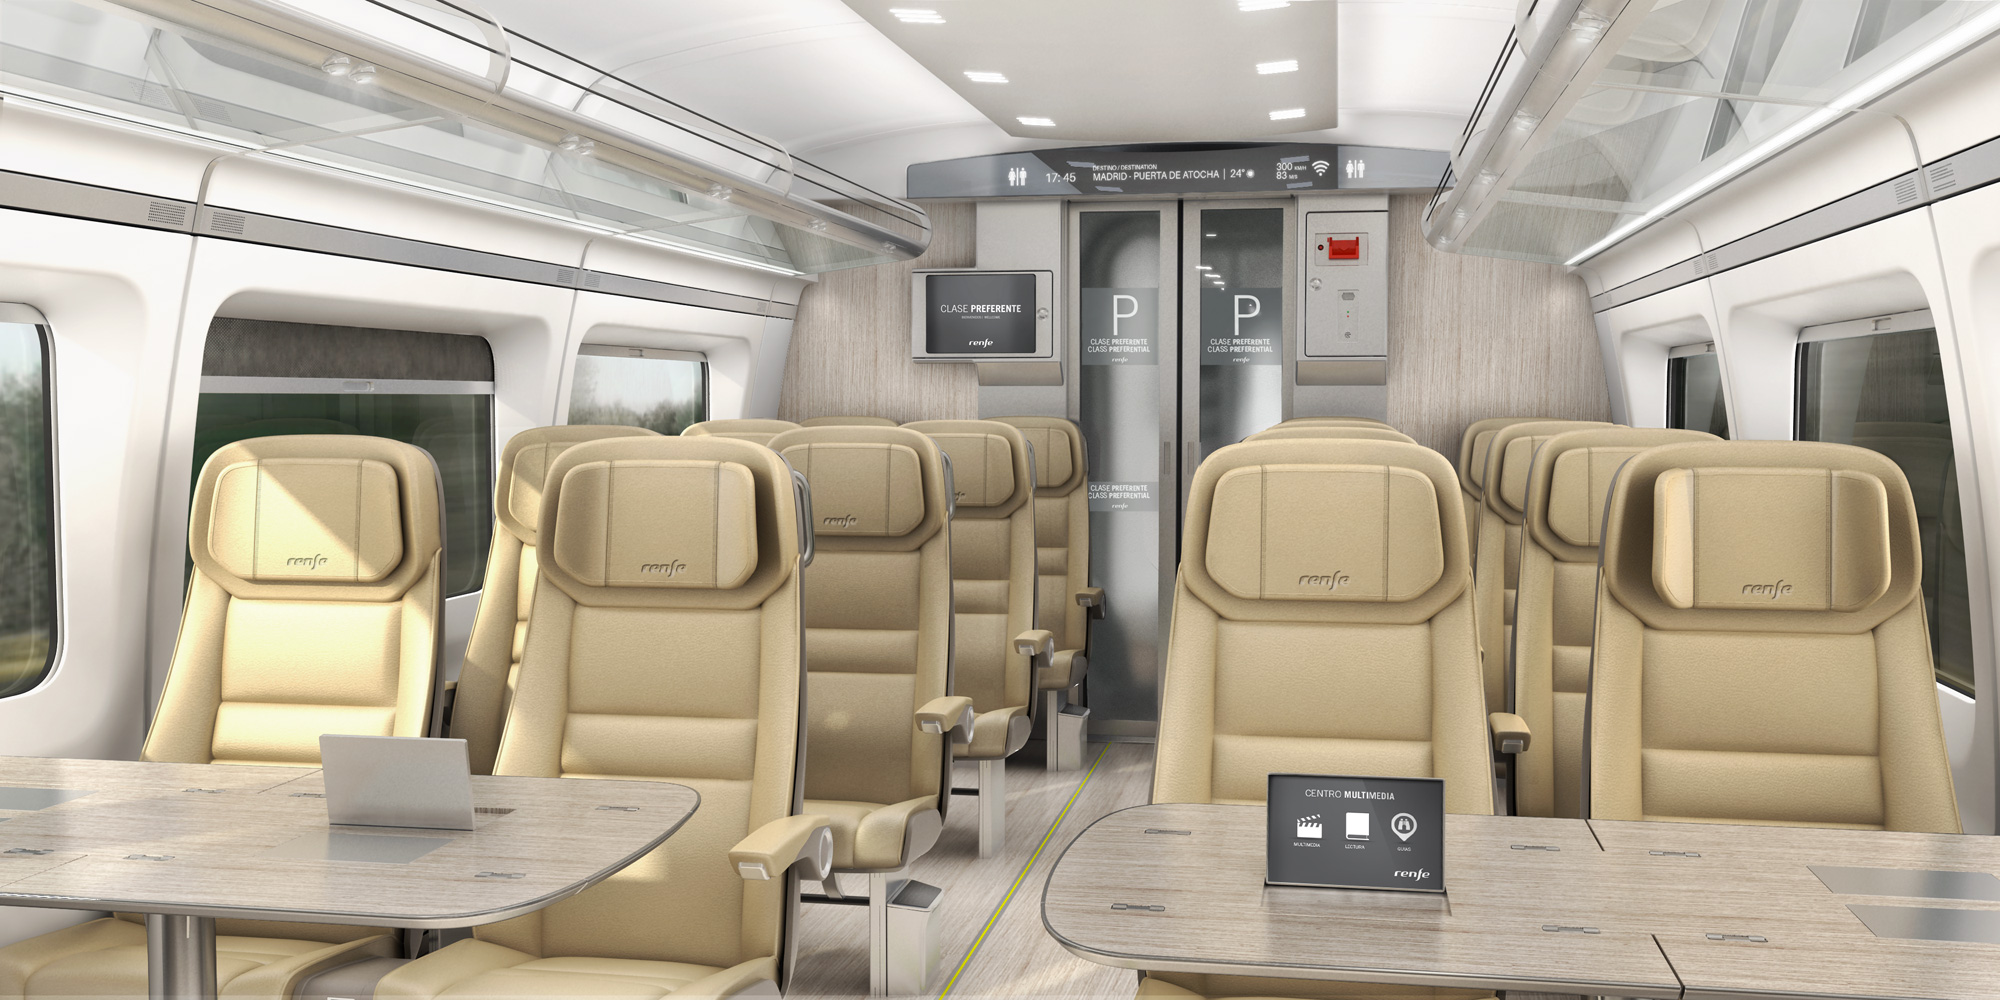 Interior design of the Renfe Avril: 'Preferente' class